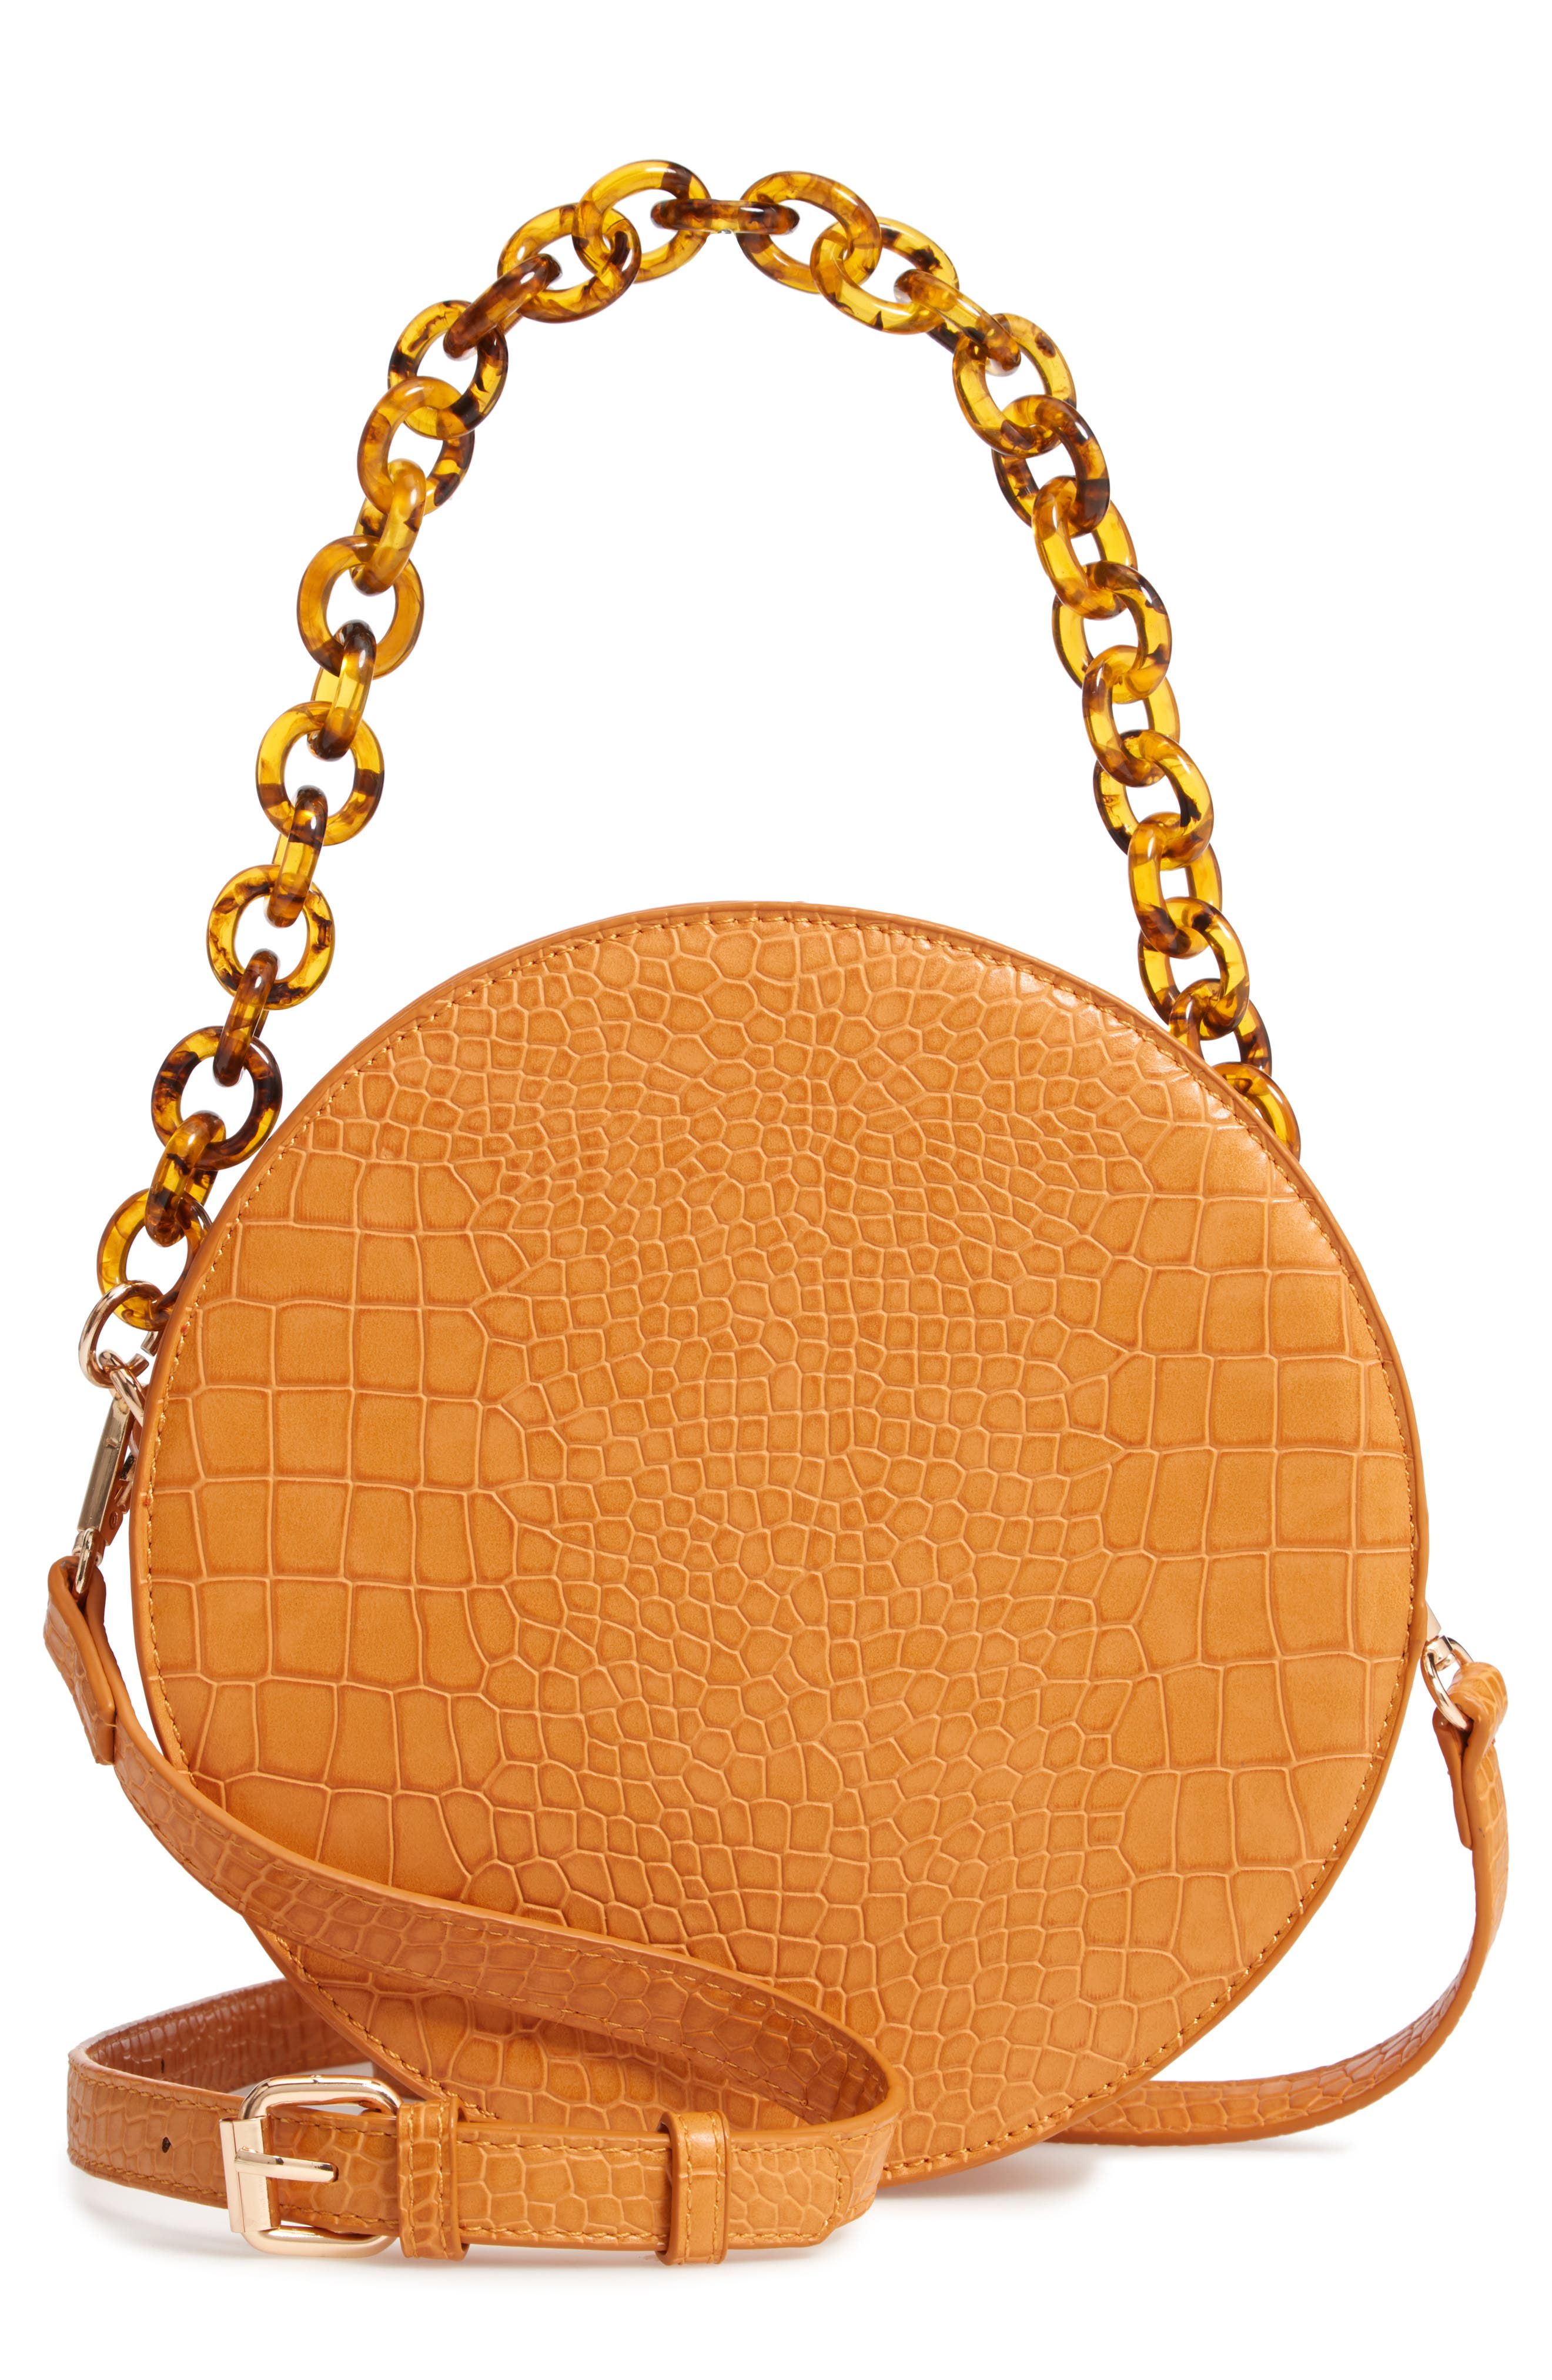 STREET LEVEL Croc Embossed Faux Leather Circle Bag - Yellow in Mustard